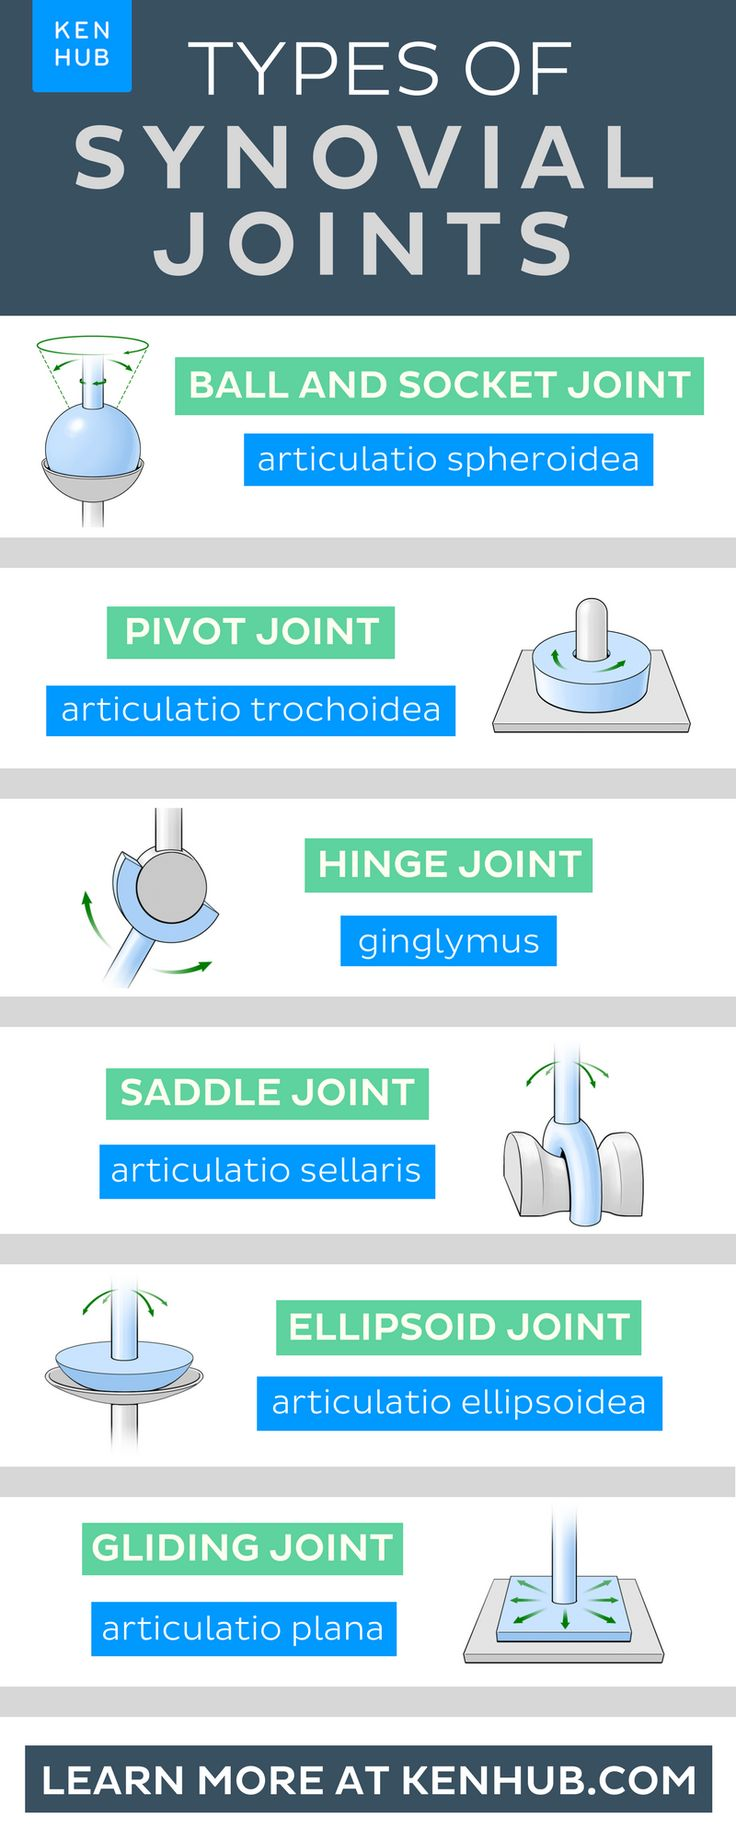 Learn about the types of synovial joints at Kenhub! Click the image to find out more. #anatomy #humanbody #medical #joint